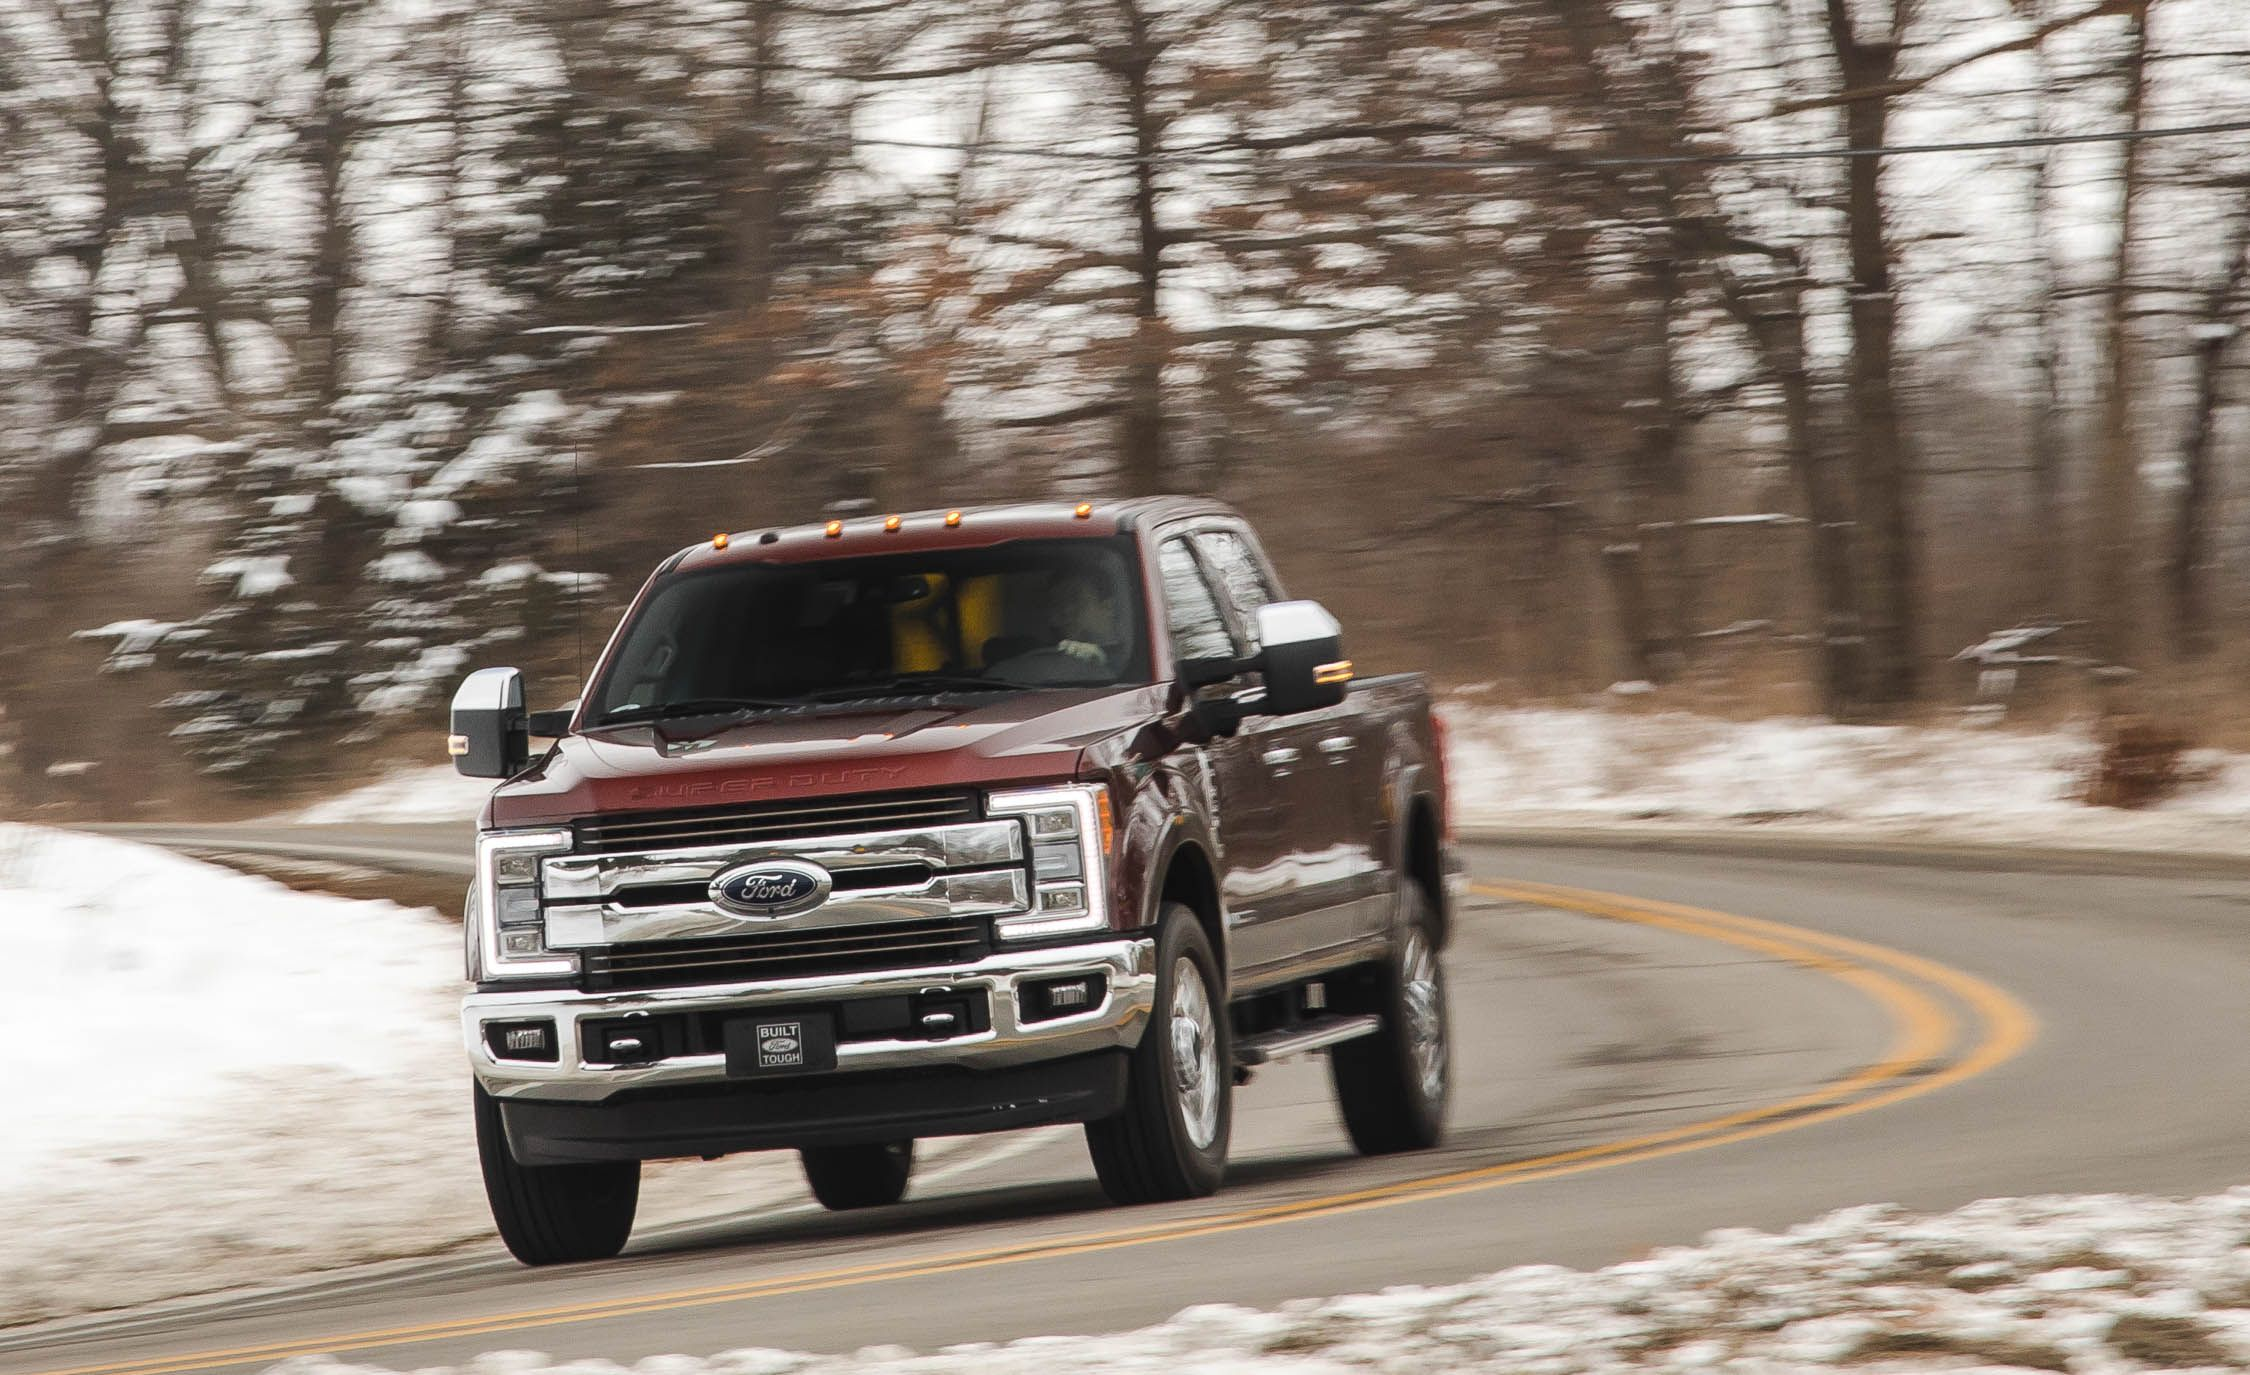 2019 Ford F-350 Super Duty Reviews | Ford F-350 Super Duty Price, Photos,  and Specs | Car and Driver